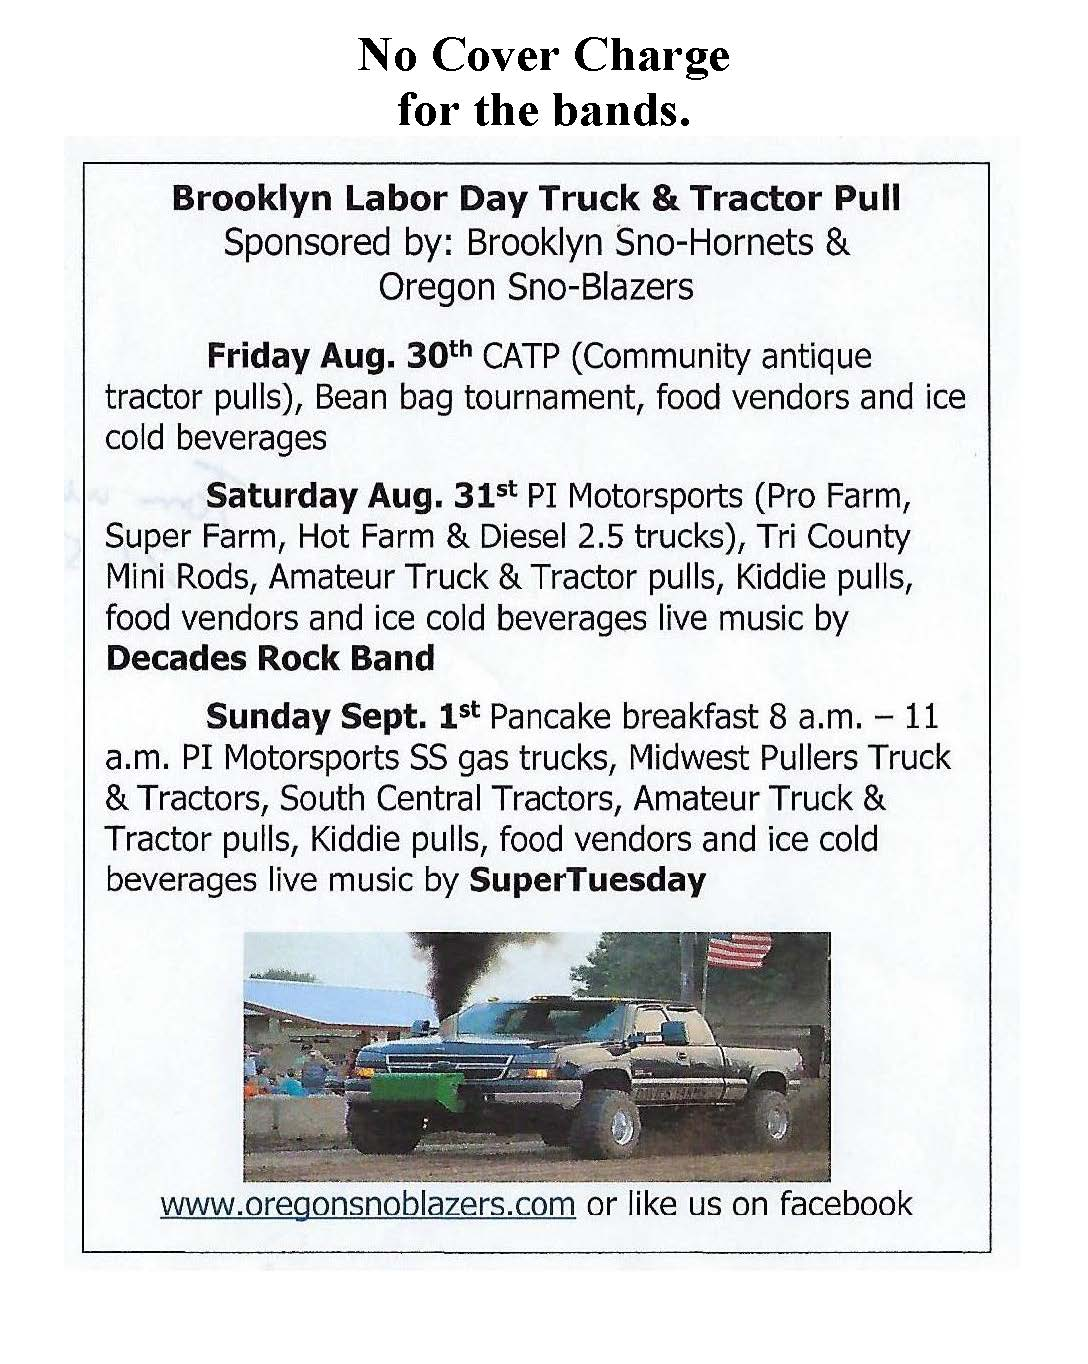 Brooklyn Labor Day Truck & Tractor Pull 8/31/19 through 9/1/19